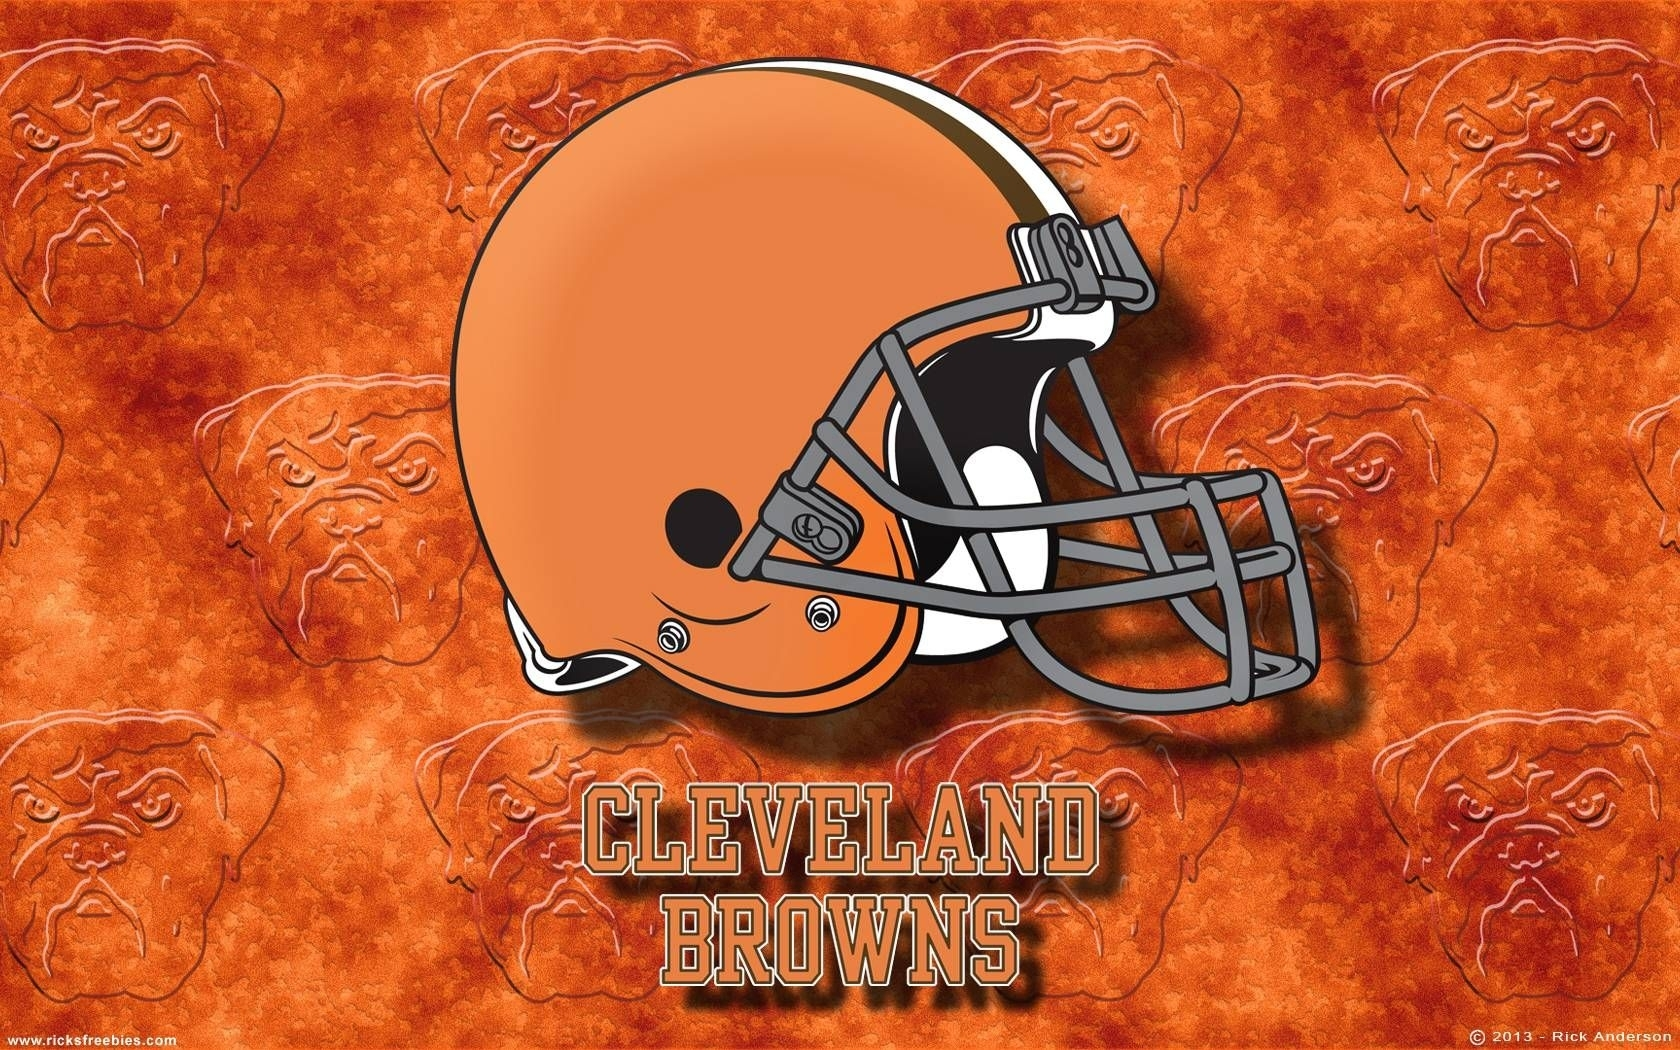 cleveland browns 2015 wallpapers - wallpaper cave | images